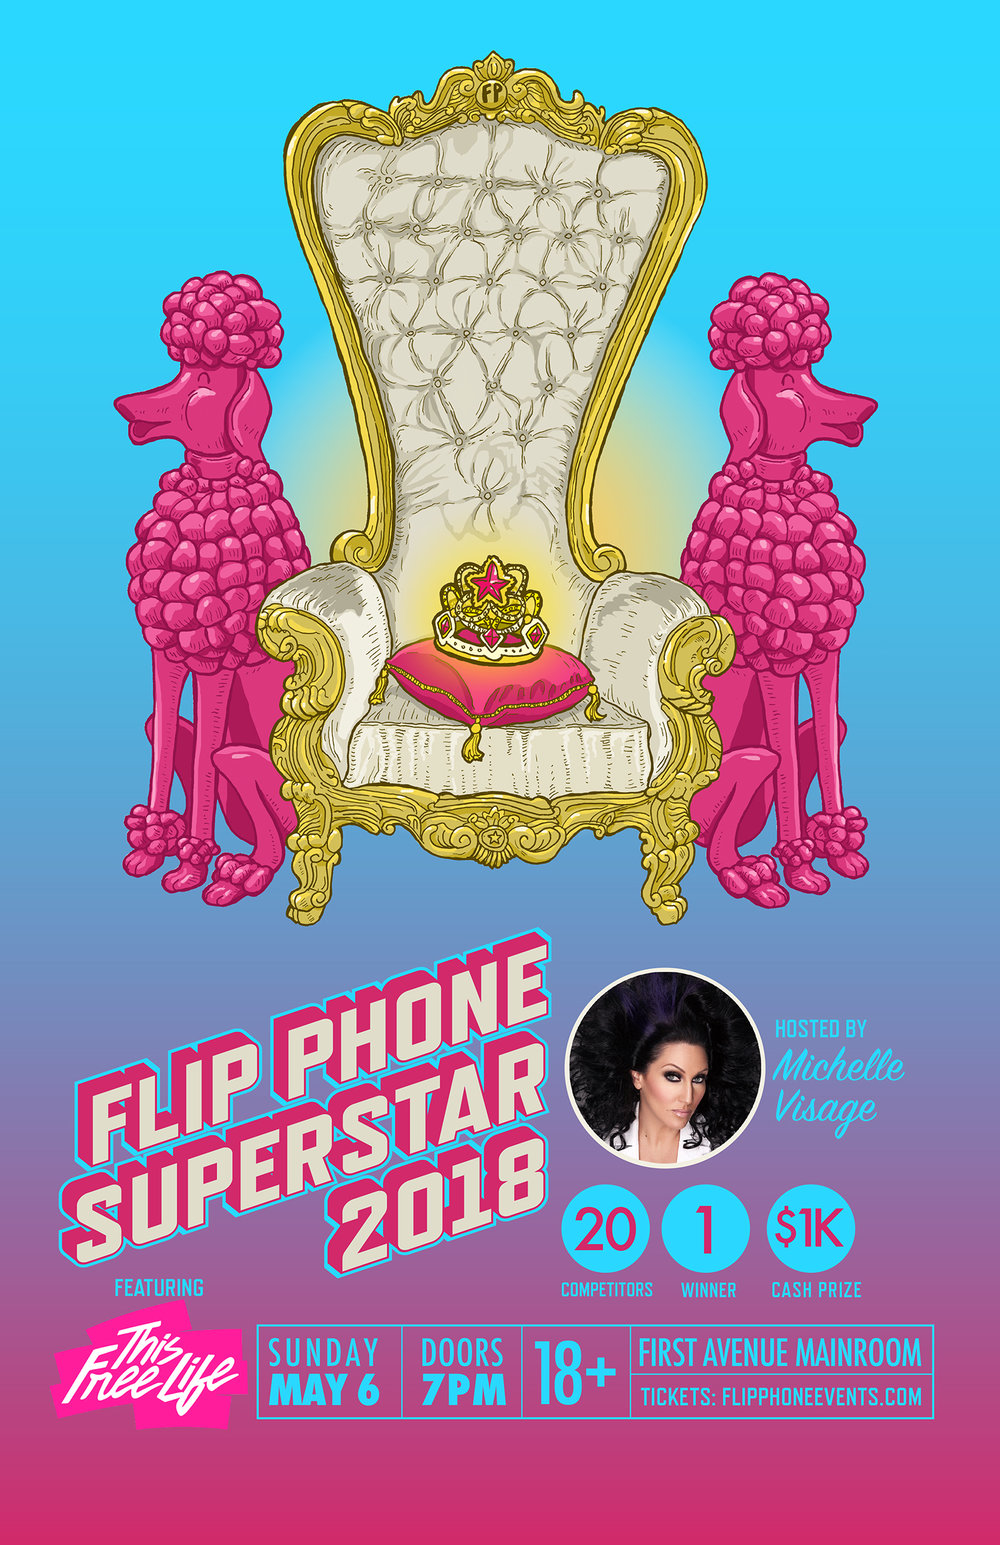 Taylor-Baldry-FlipPhone-Superstar.jpg